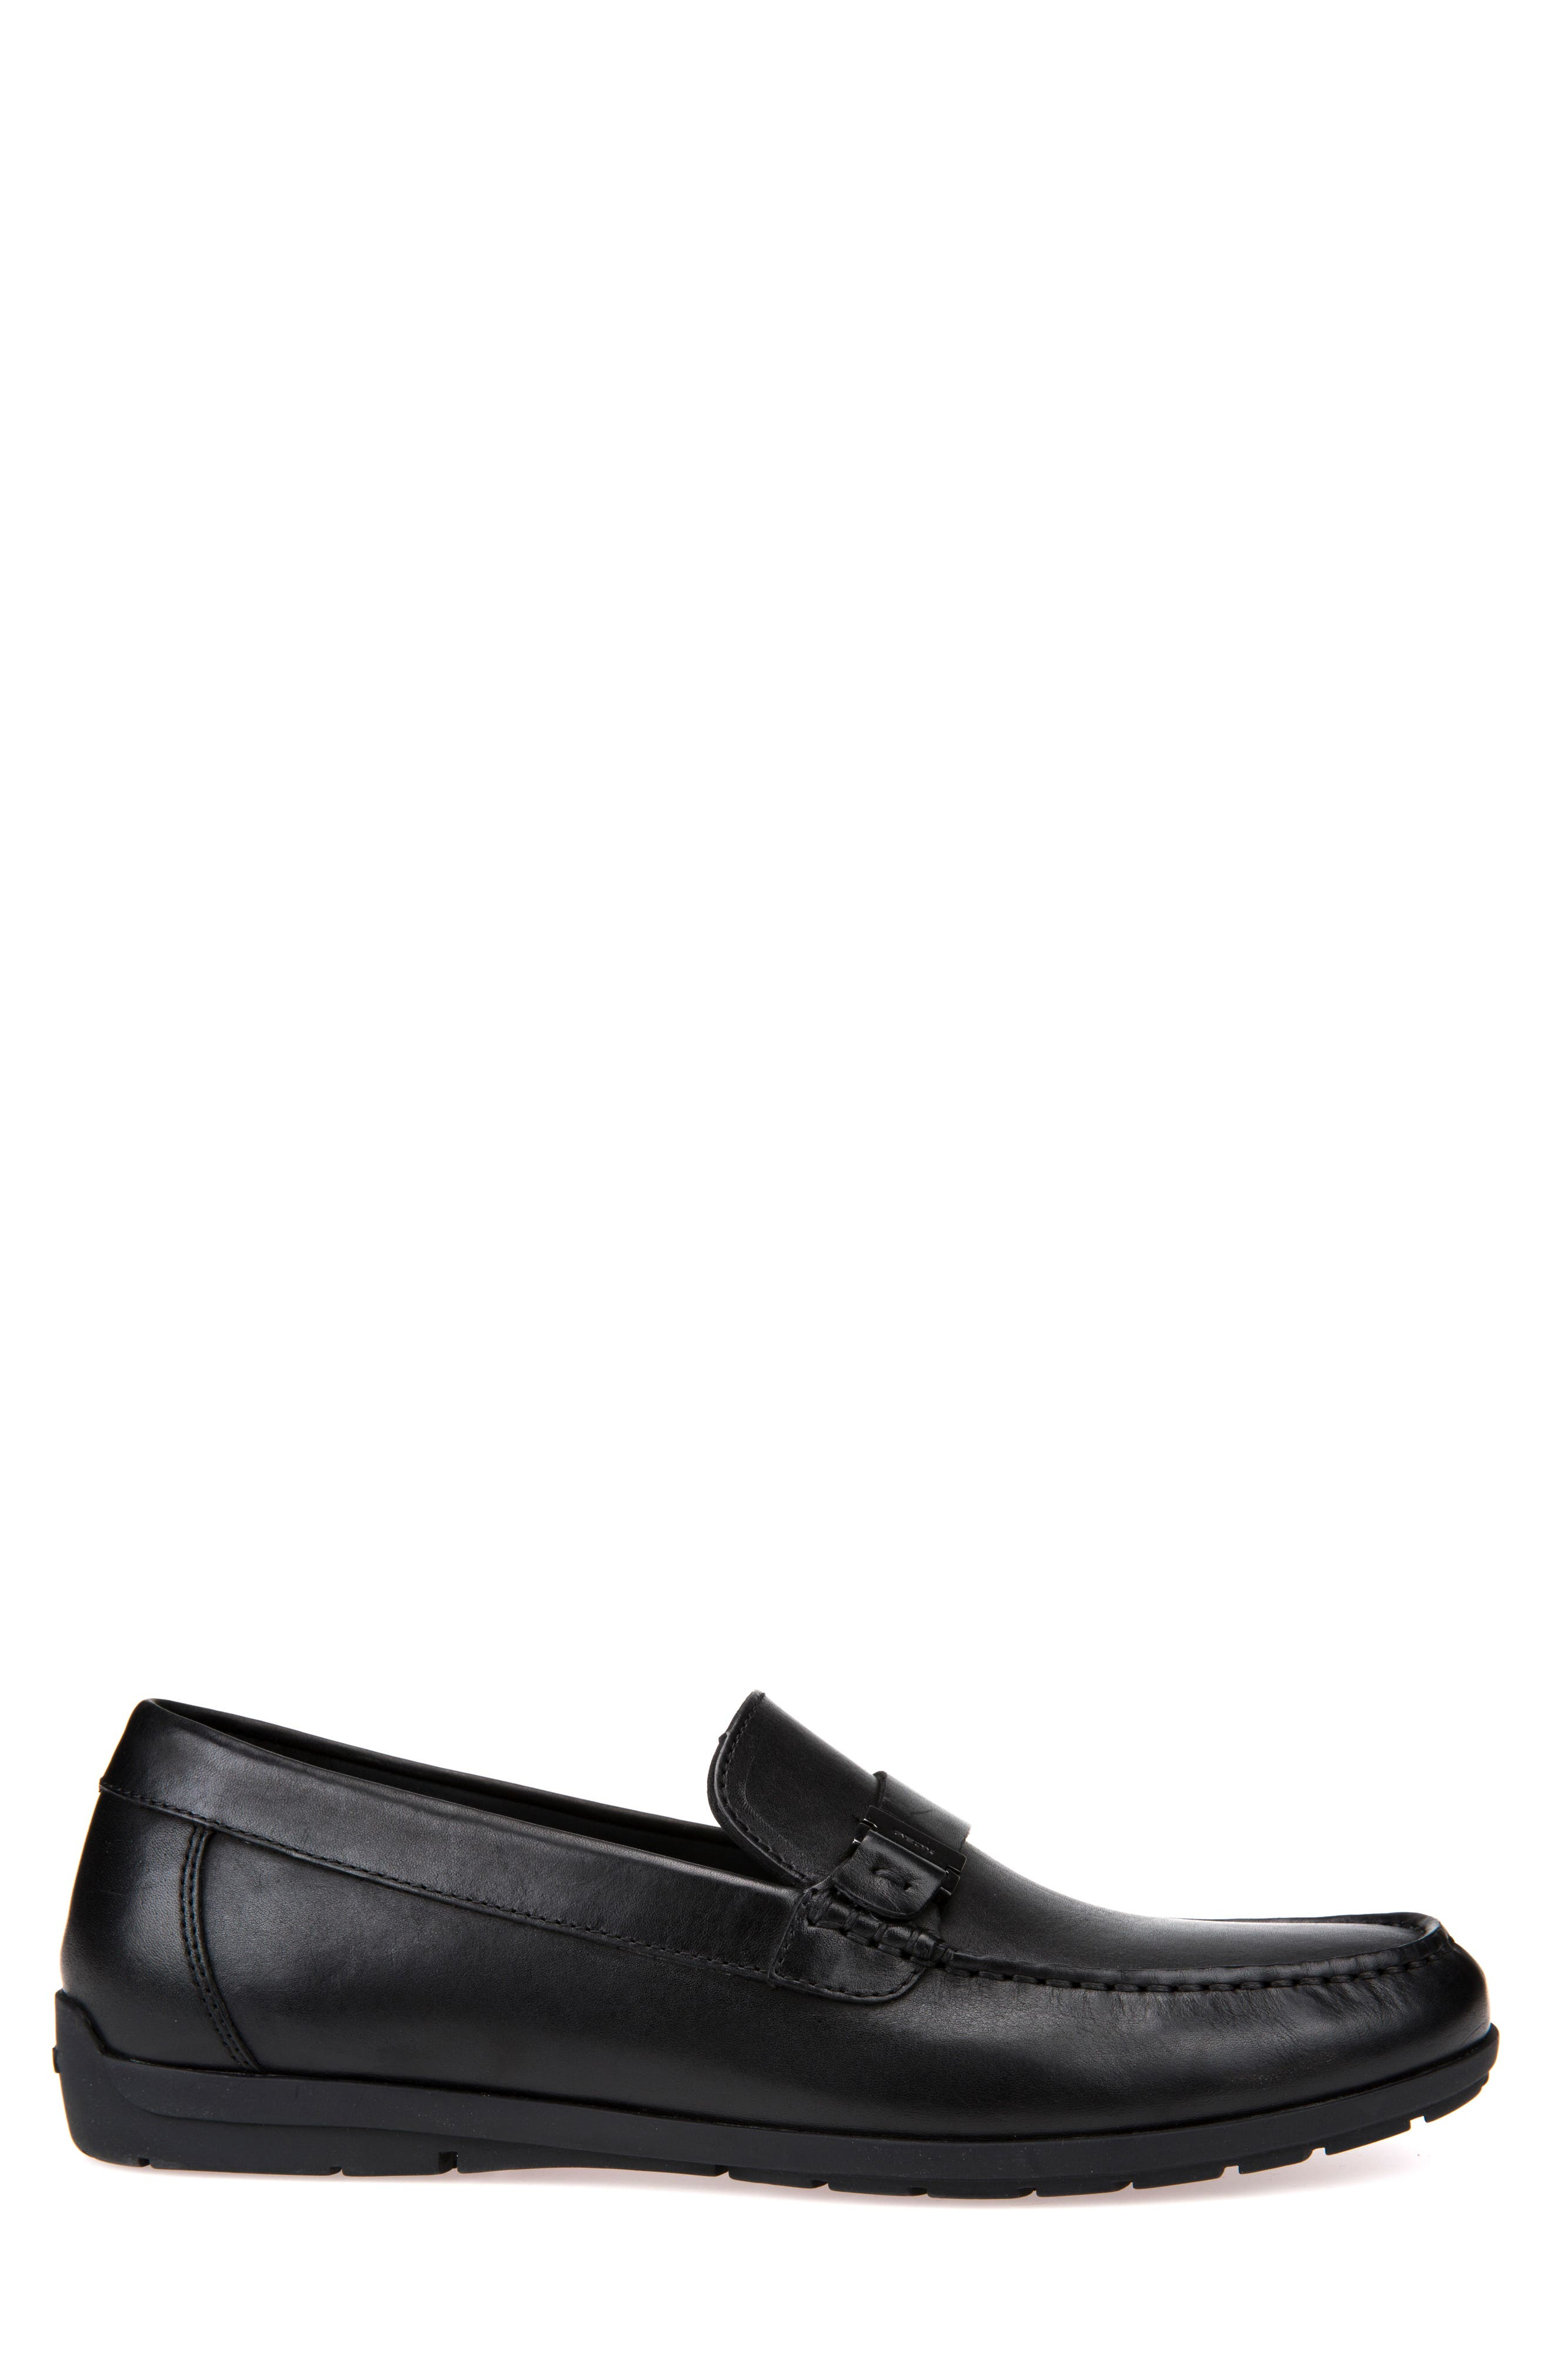 Siron W 1 Moc Toe Loafer,                             Alternate thumbnail 3, color,                             BLACK LEATHER